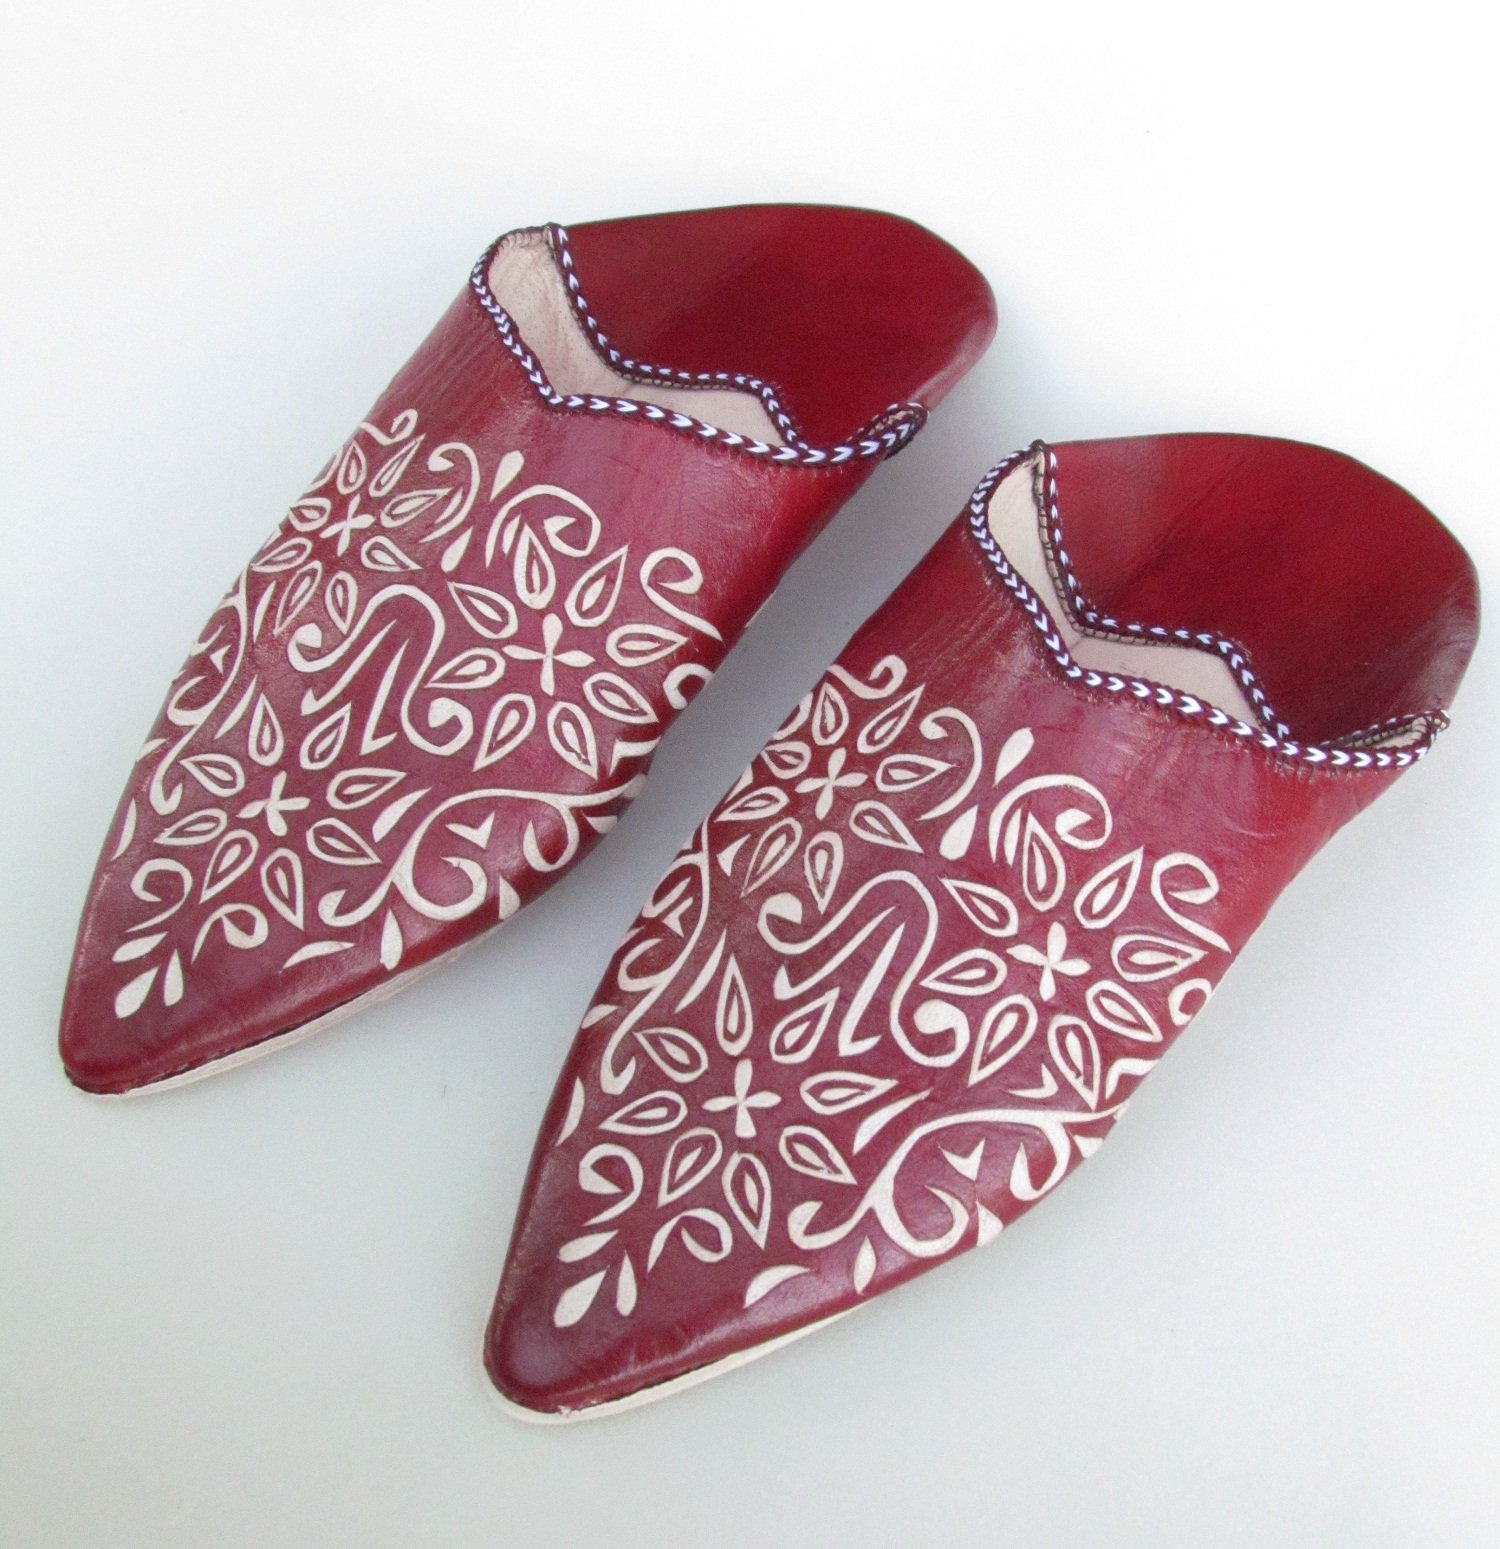 leather mule sandals women 6S4 Handmade leather indoor house mule slippers for women camel moroccan womens slippers